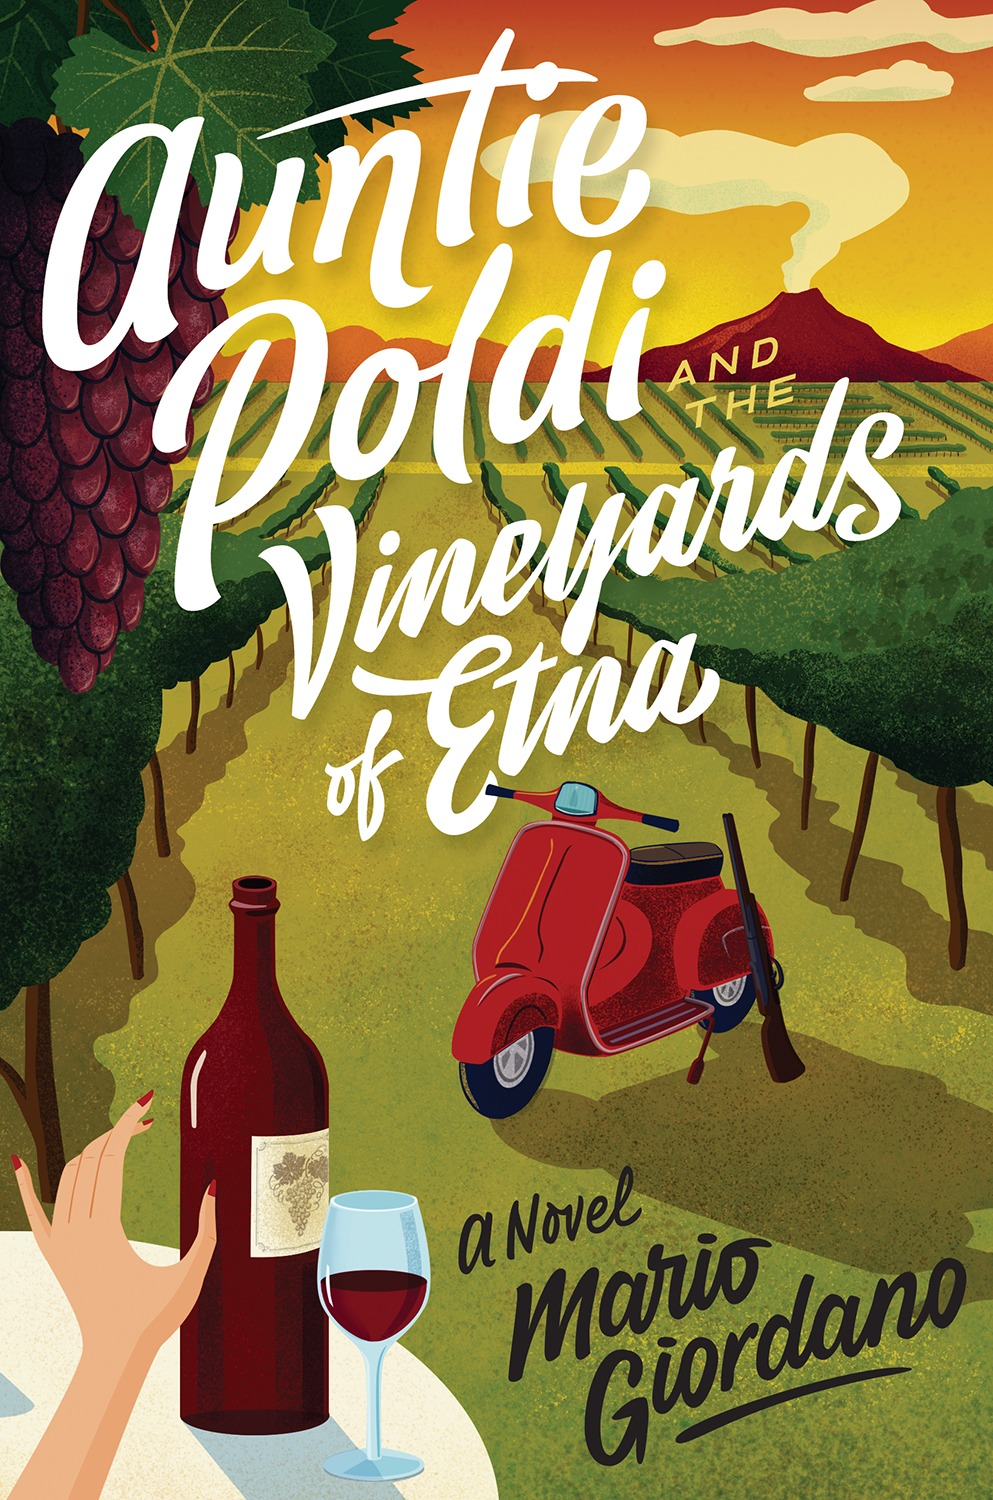 Auntie Poldi and the Vineyards of Etna-9781328919021